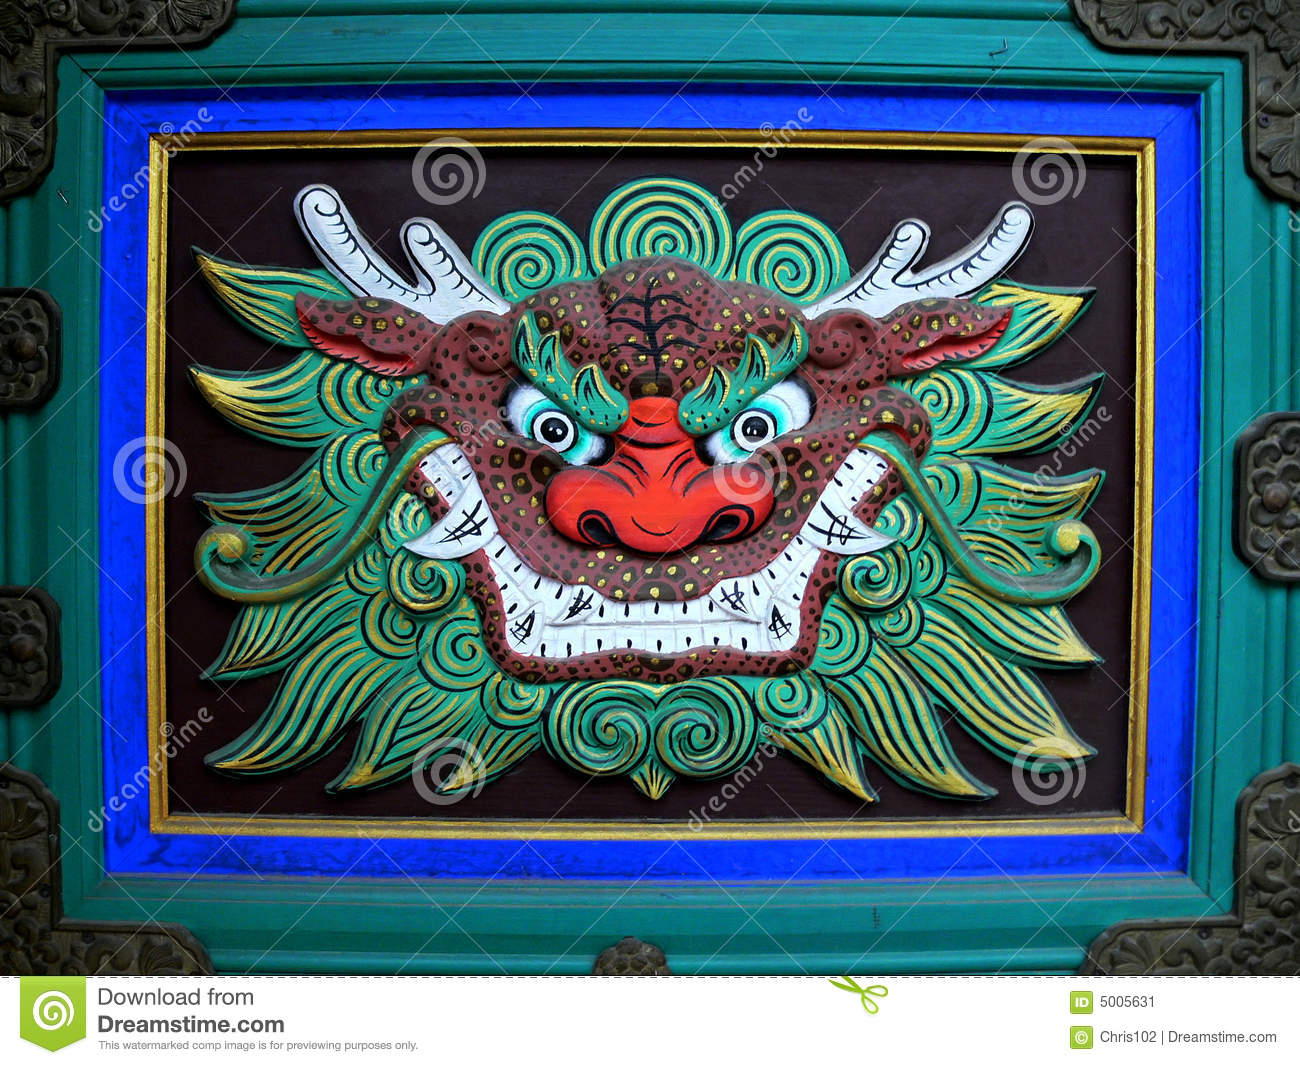 Download Dragon's Head In Buddhist Temple Stock Image - Image of temple, dragon: 5005631